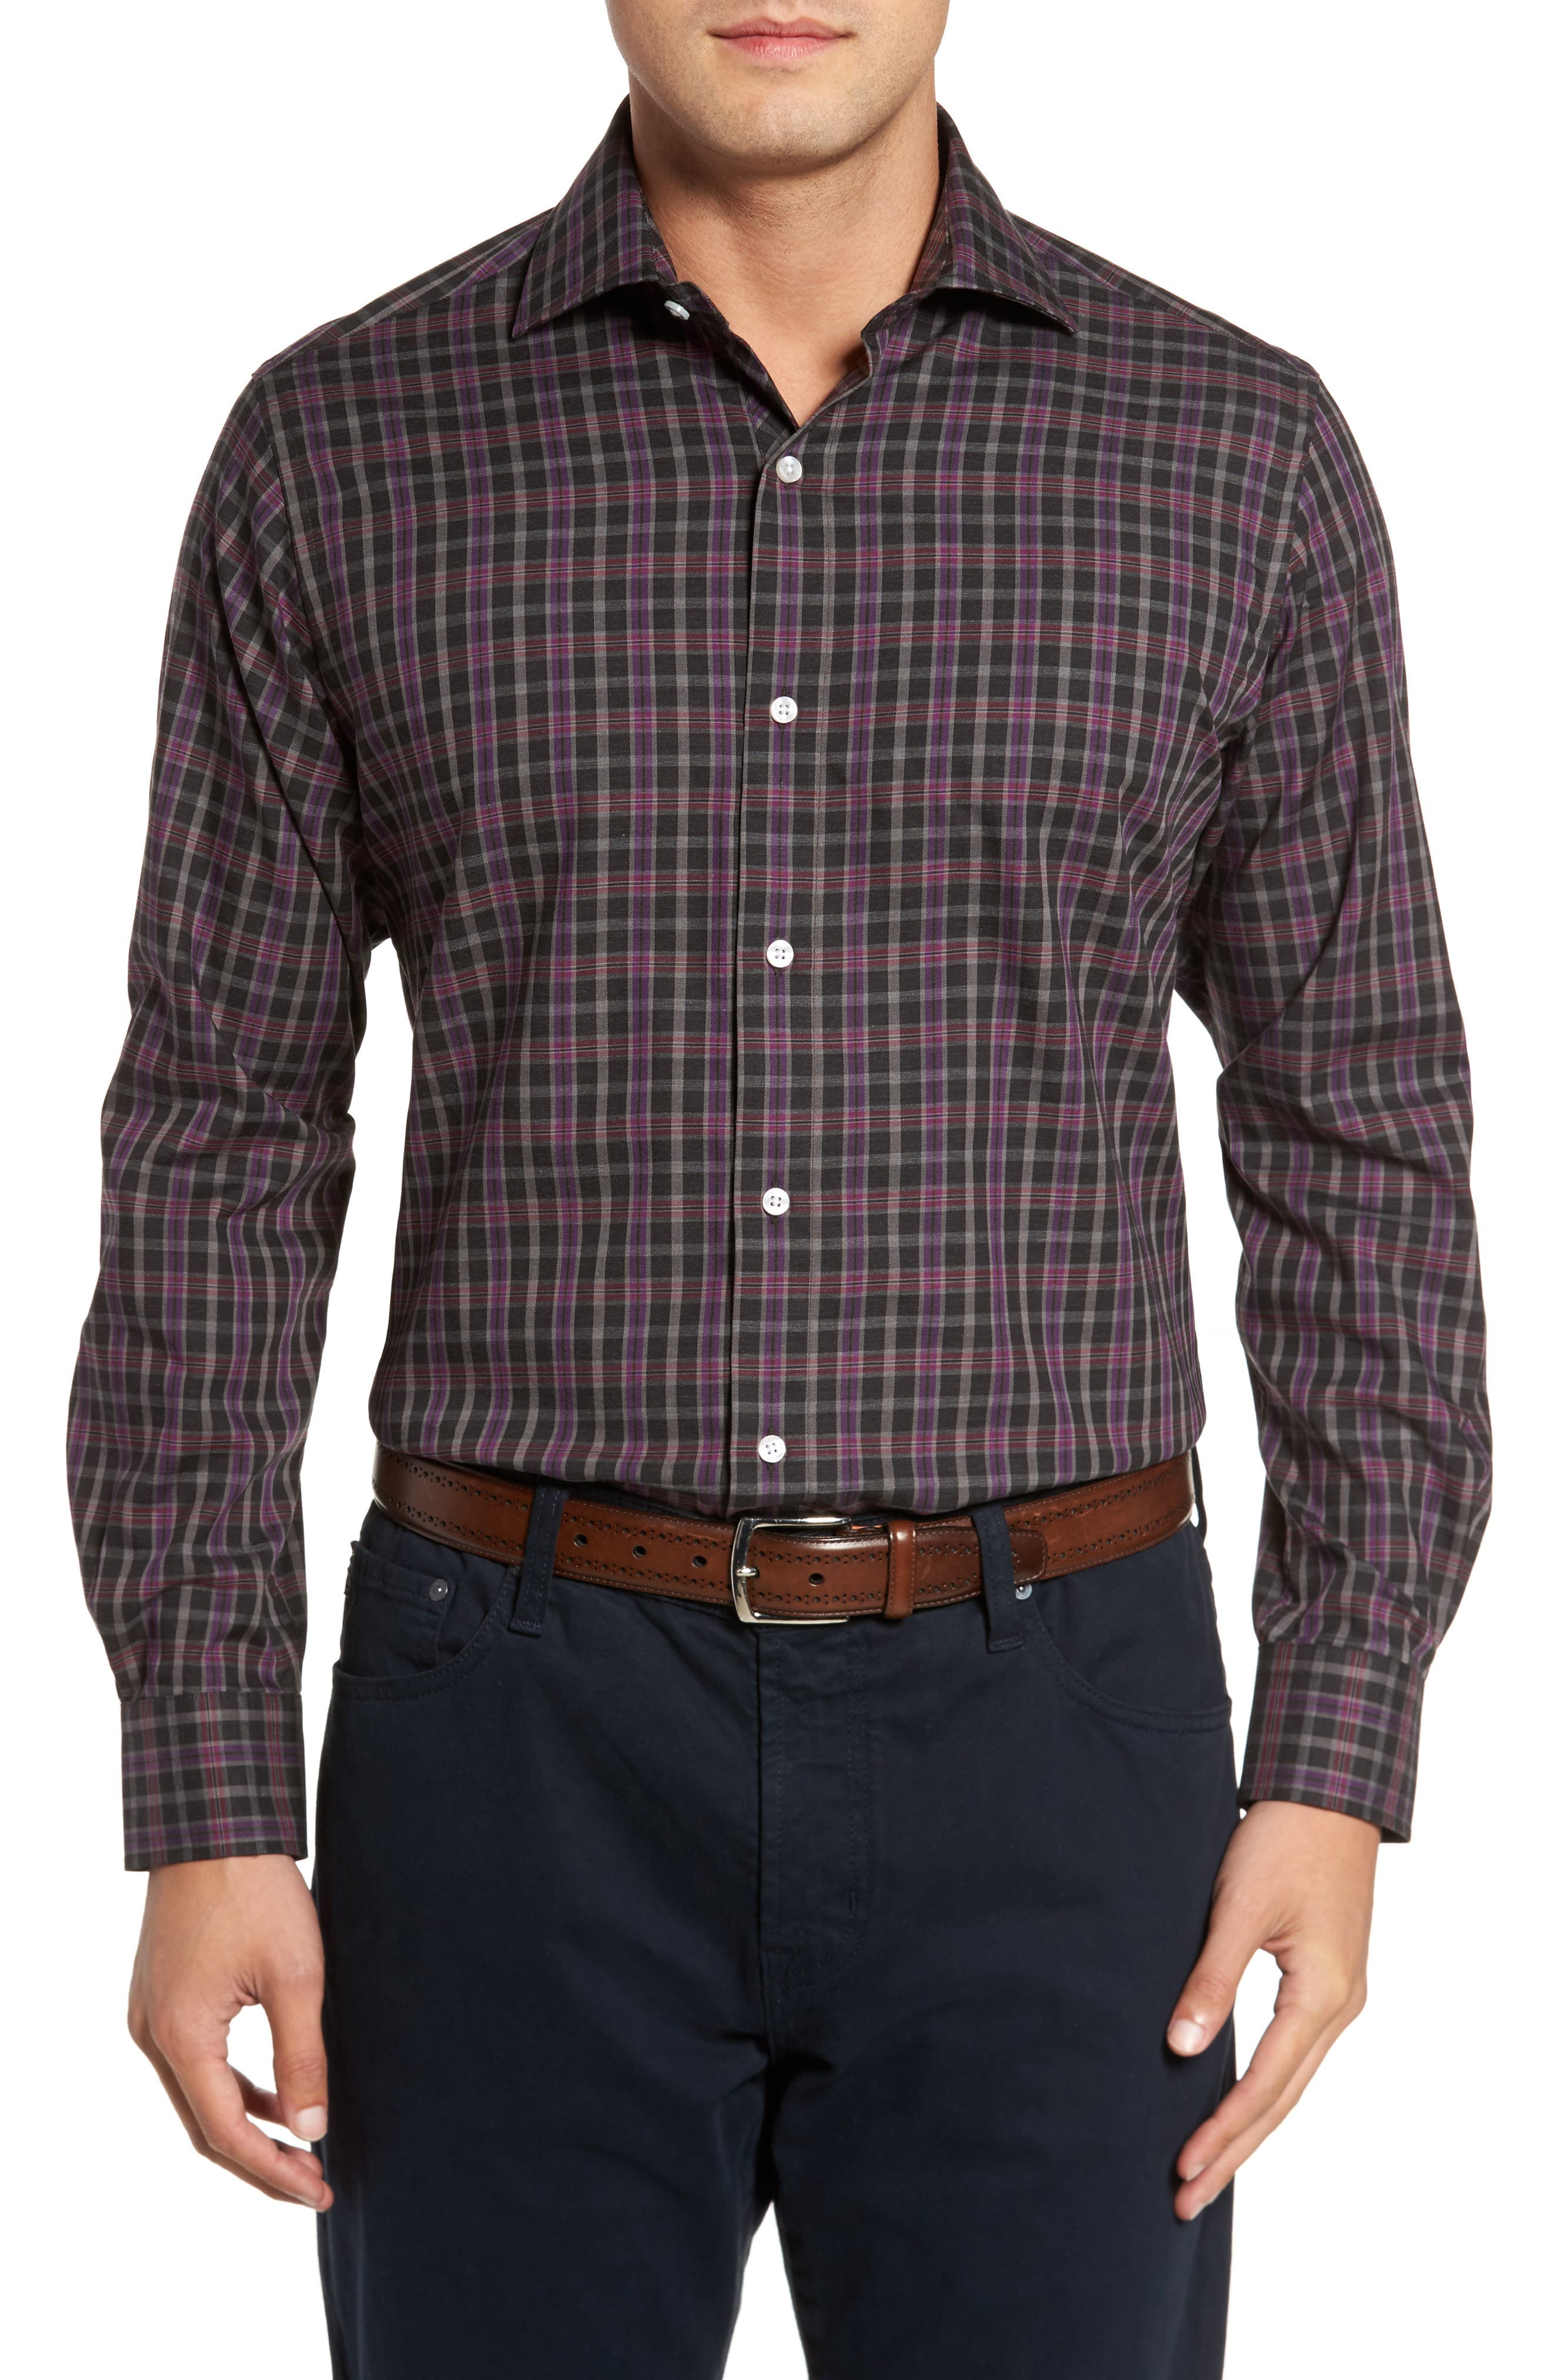 Main Image - TailorByrd Carencro Plaid Sport Shirt